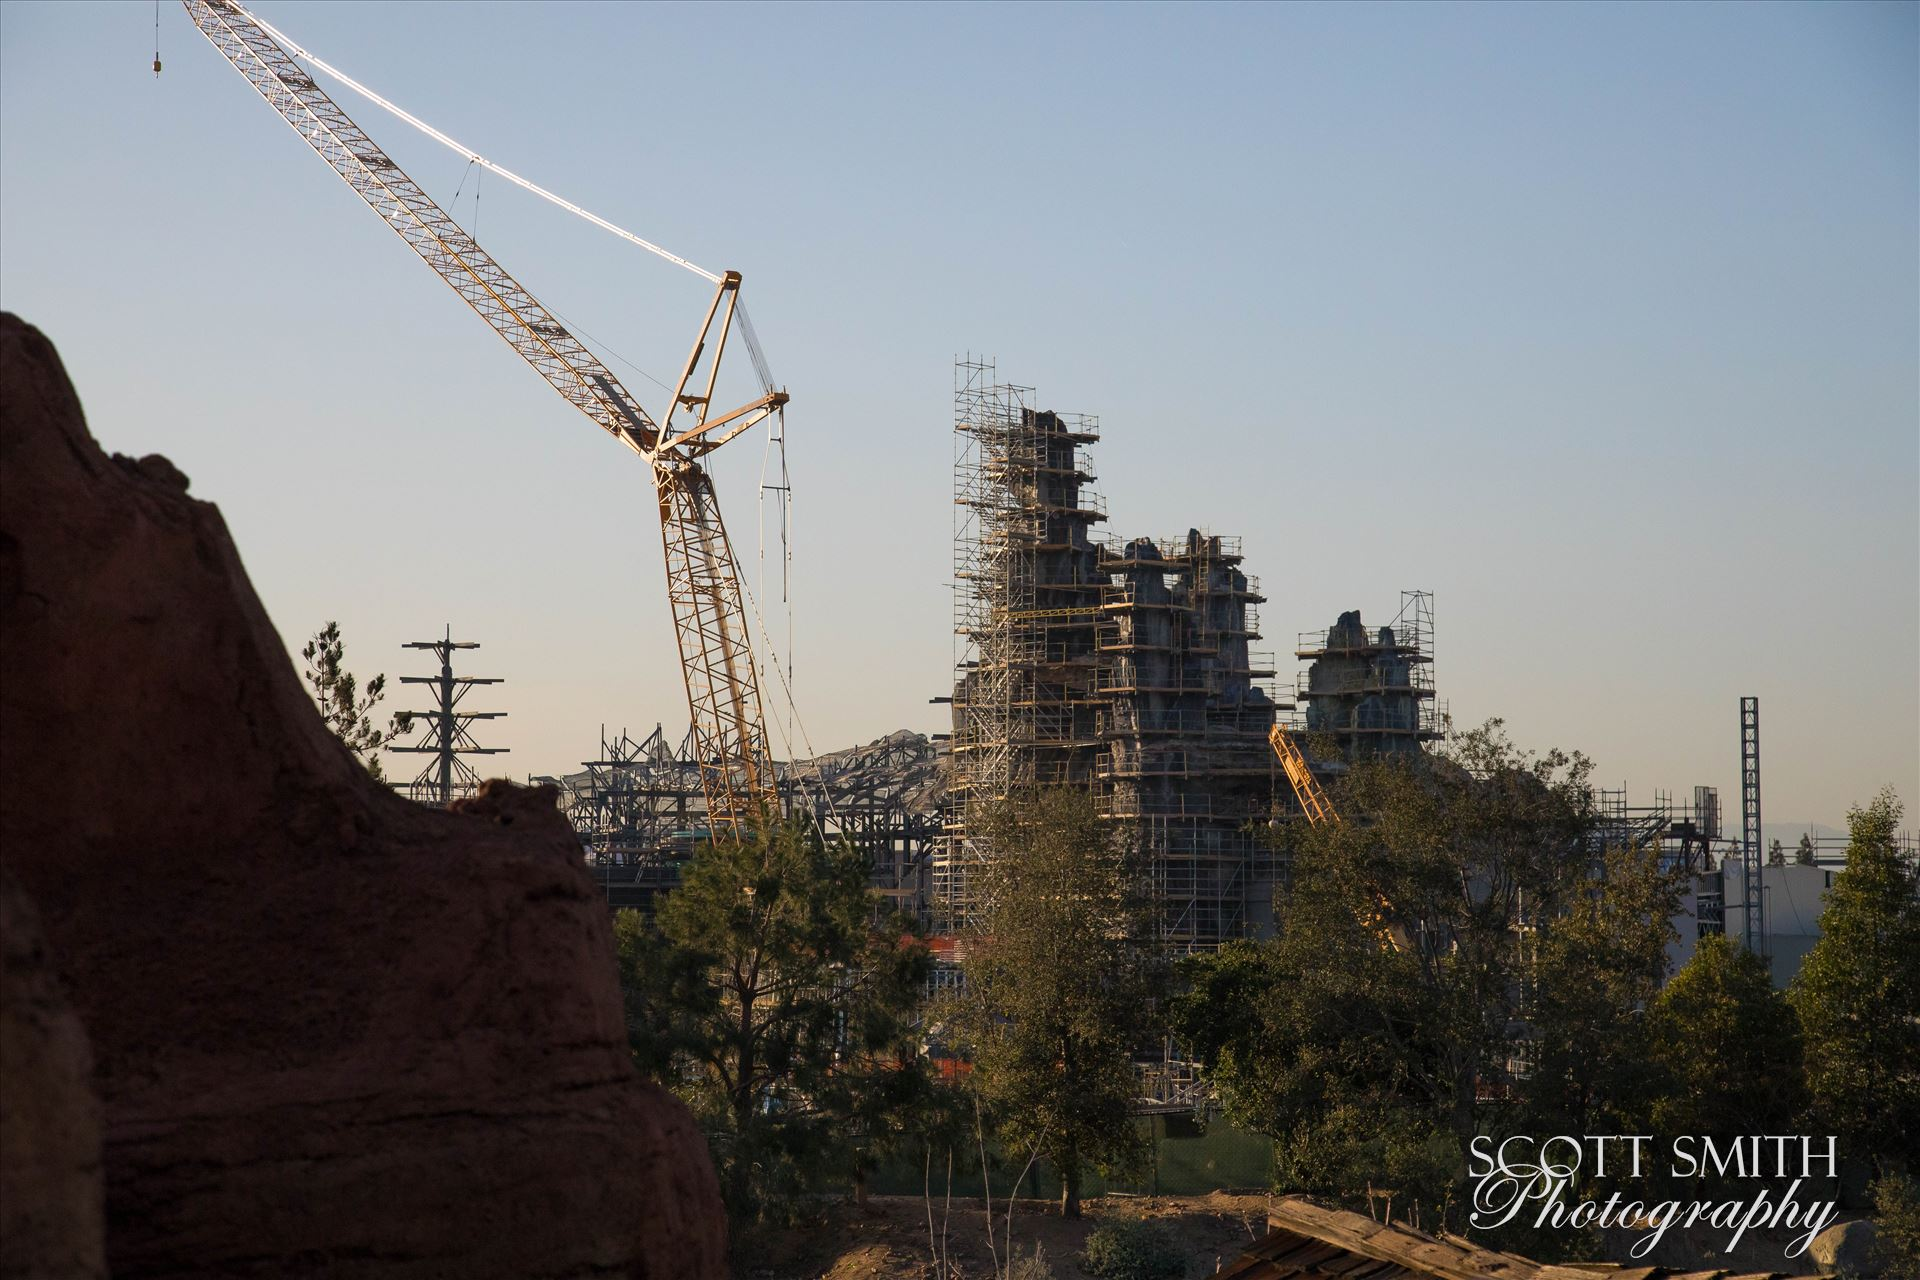 Star Wars Galaxy's Edge Construction at Disneyland - A rare photo of construction progress of the new Star Wars Galaxy's Edge park at Disneyland. by D Scott Smith